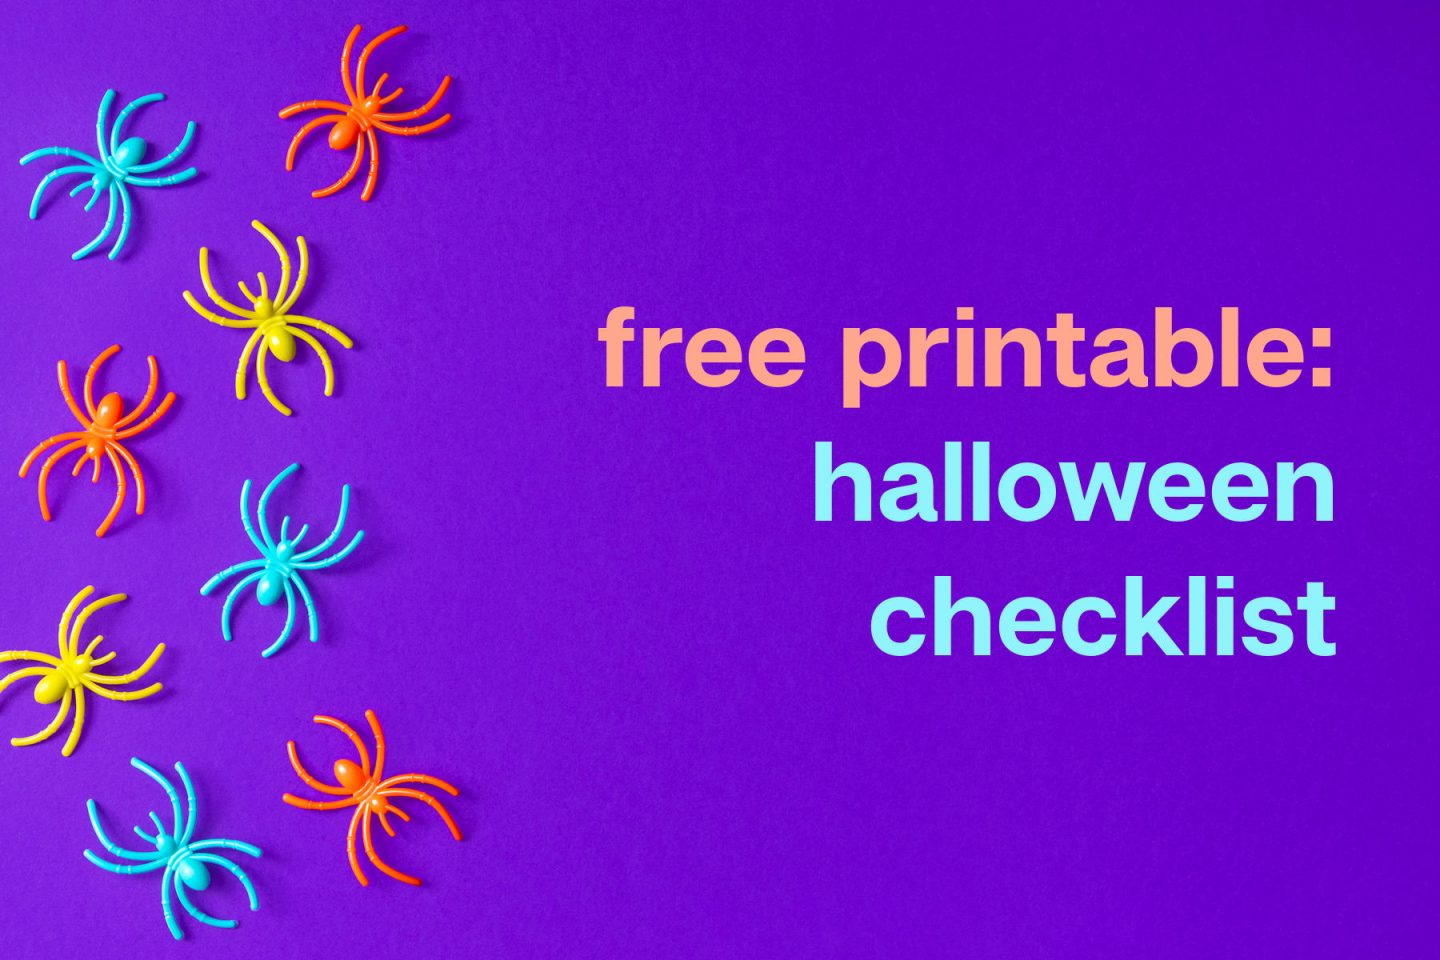 cobberson colorful spiders free printabe halloween checklist